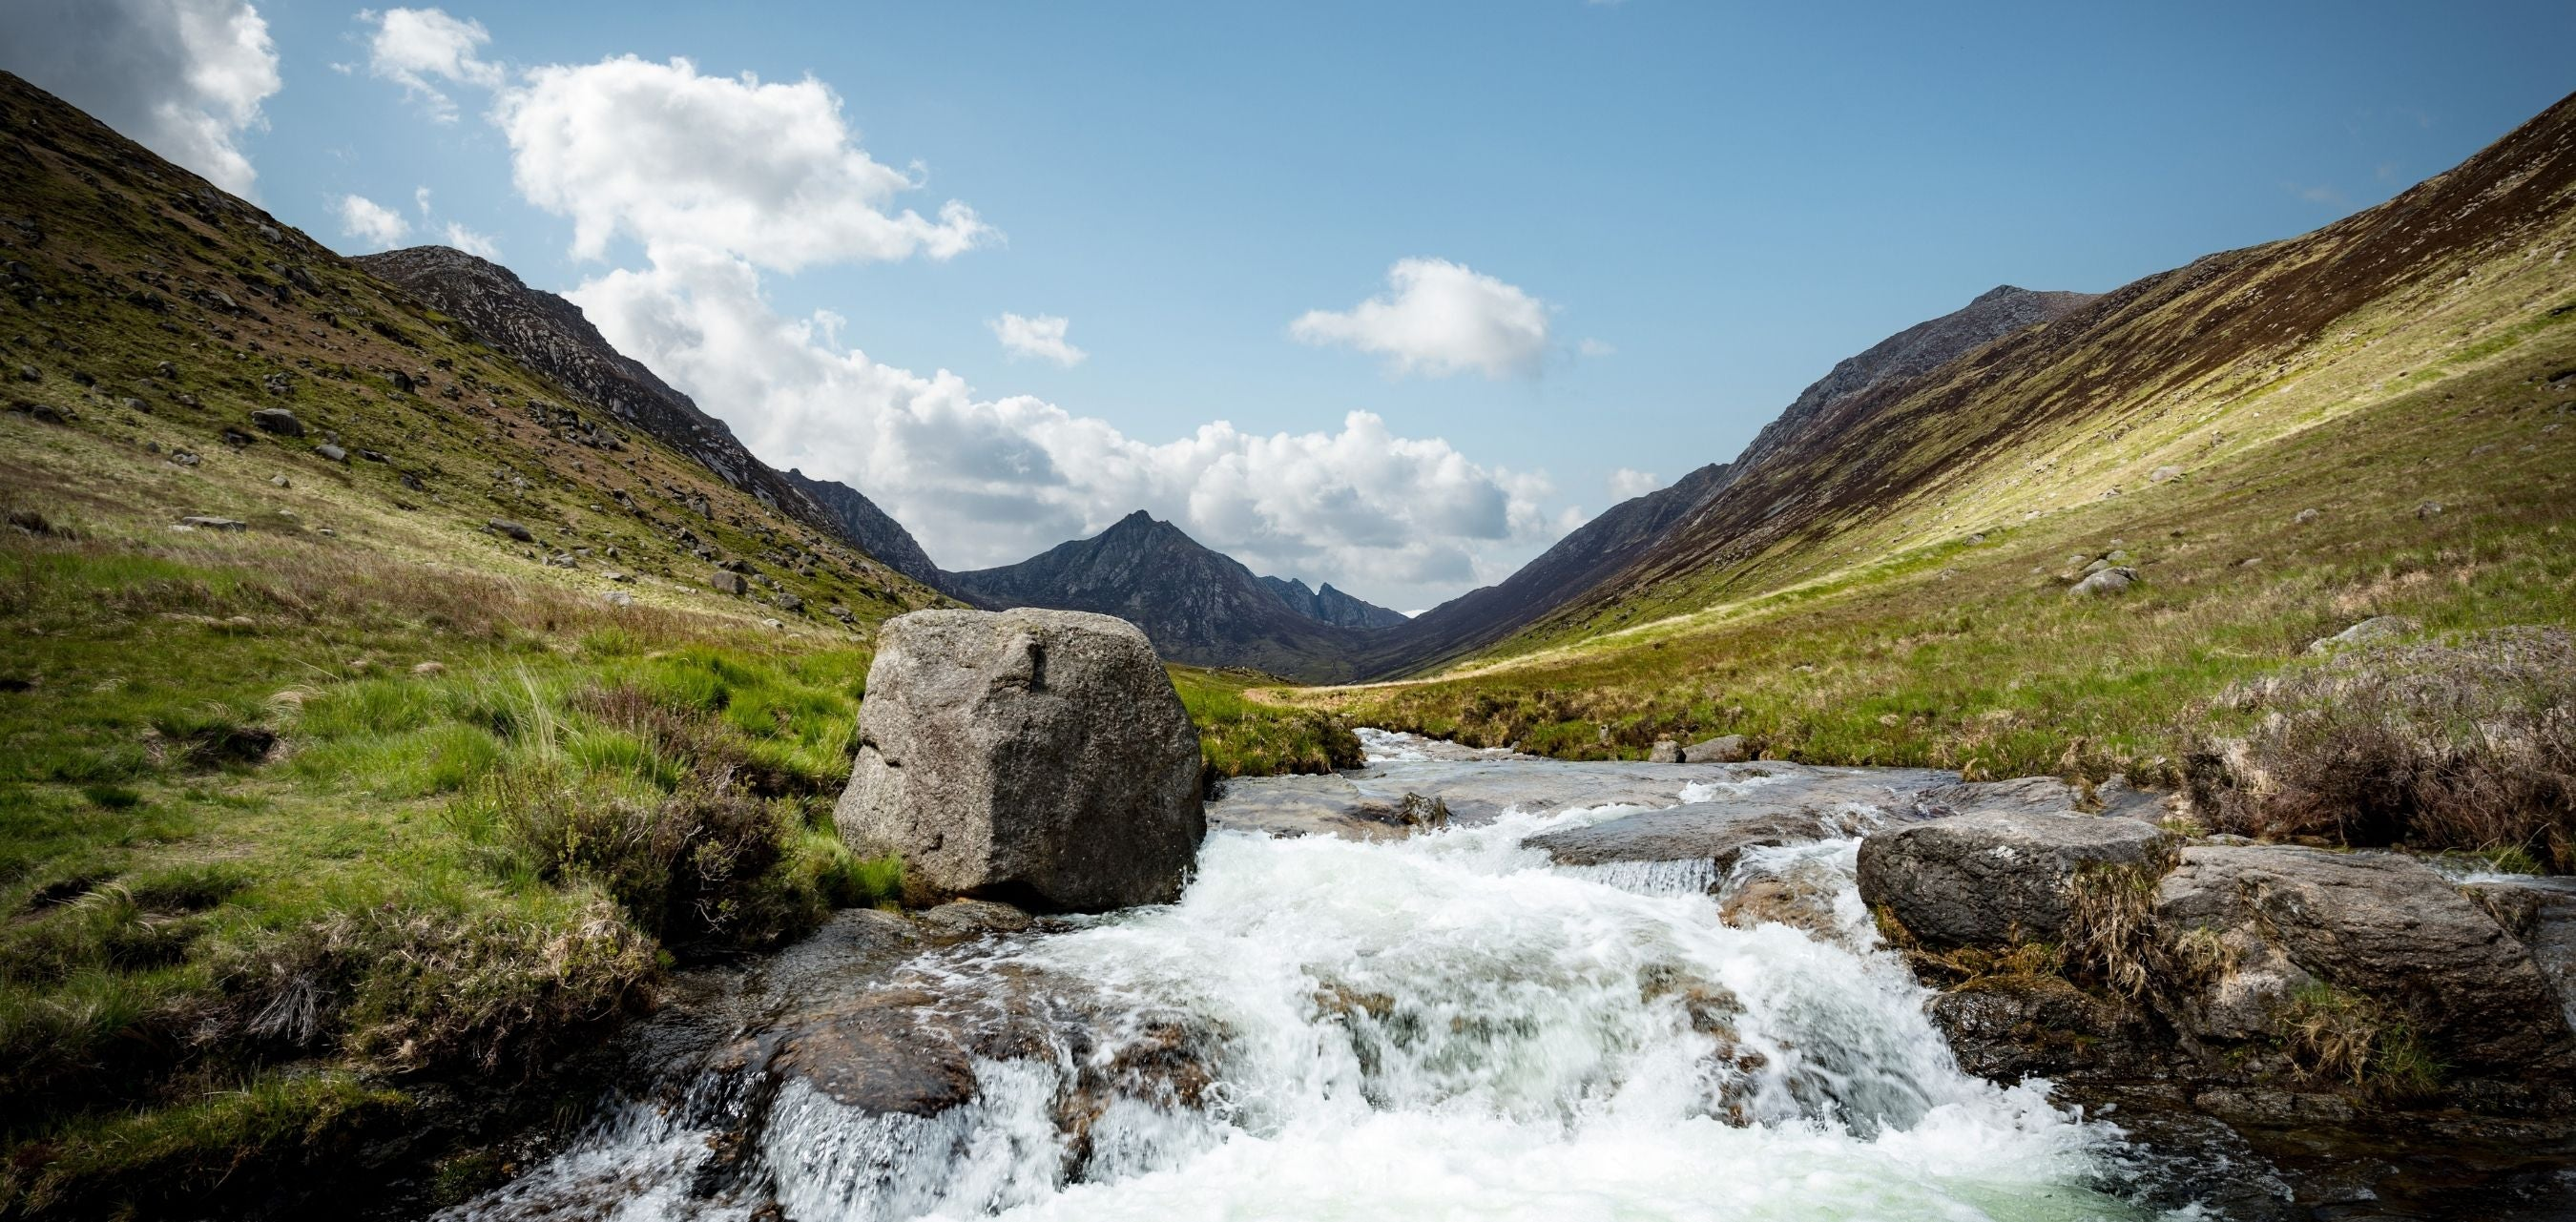 Image of a glen in Scotland